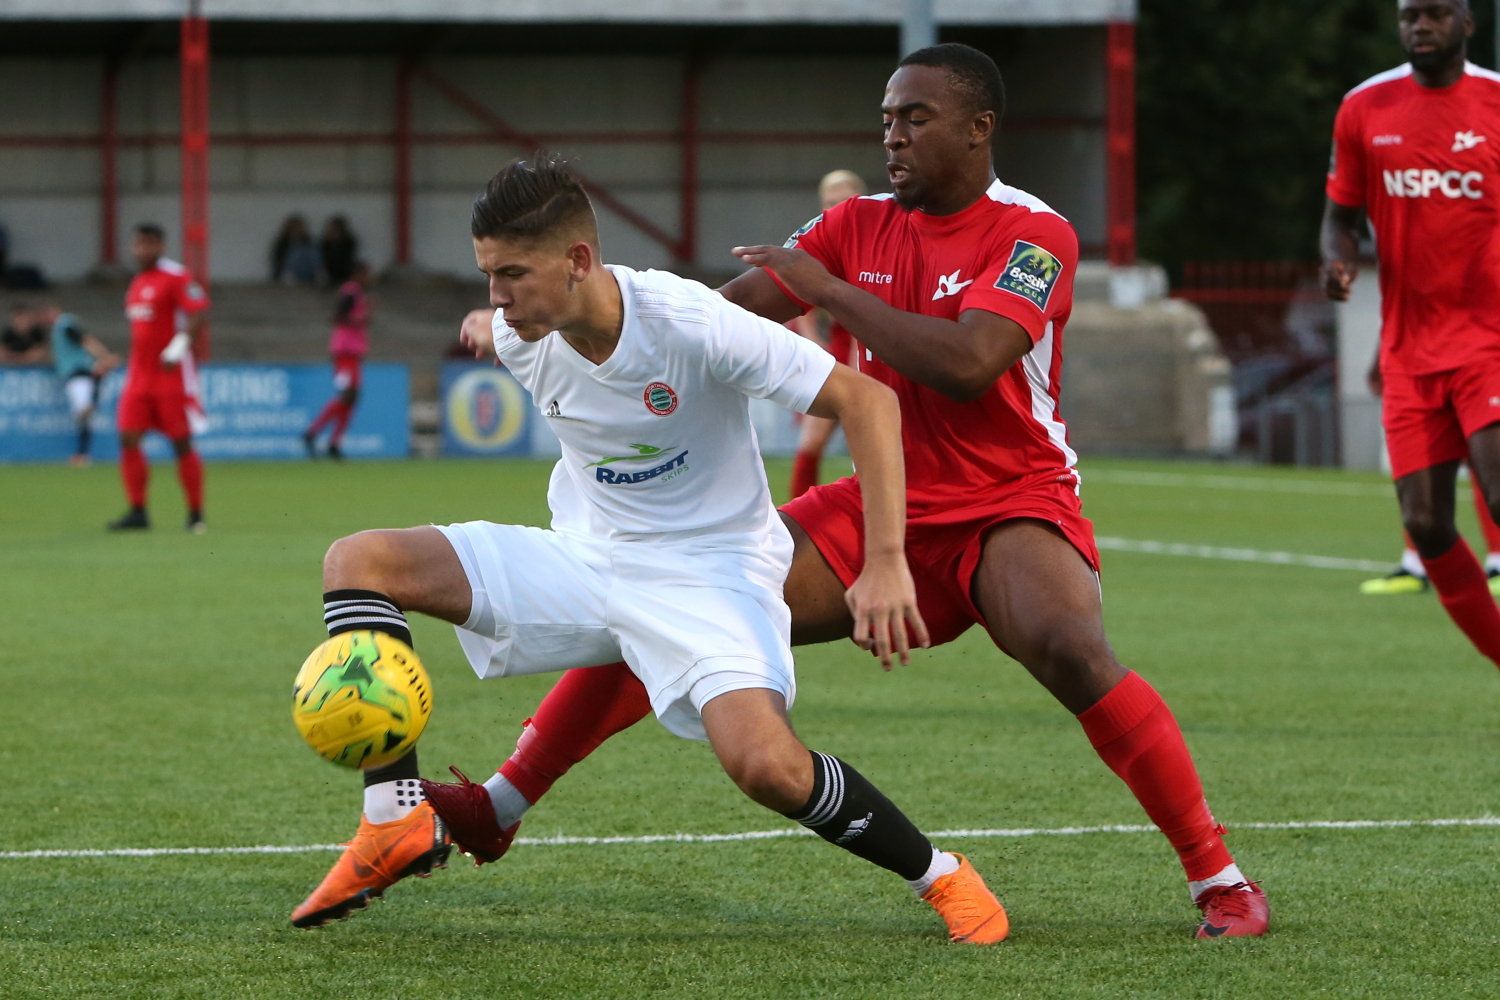 Read the full article - FIVE FACTS: Carshalton